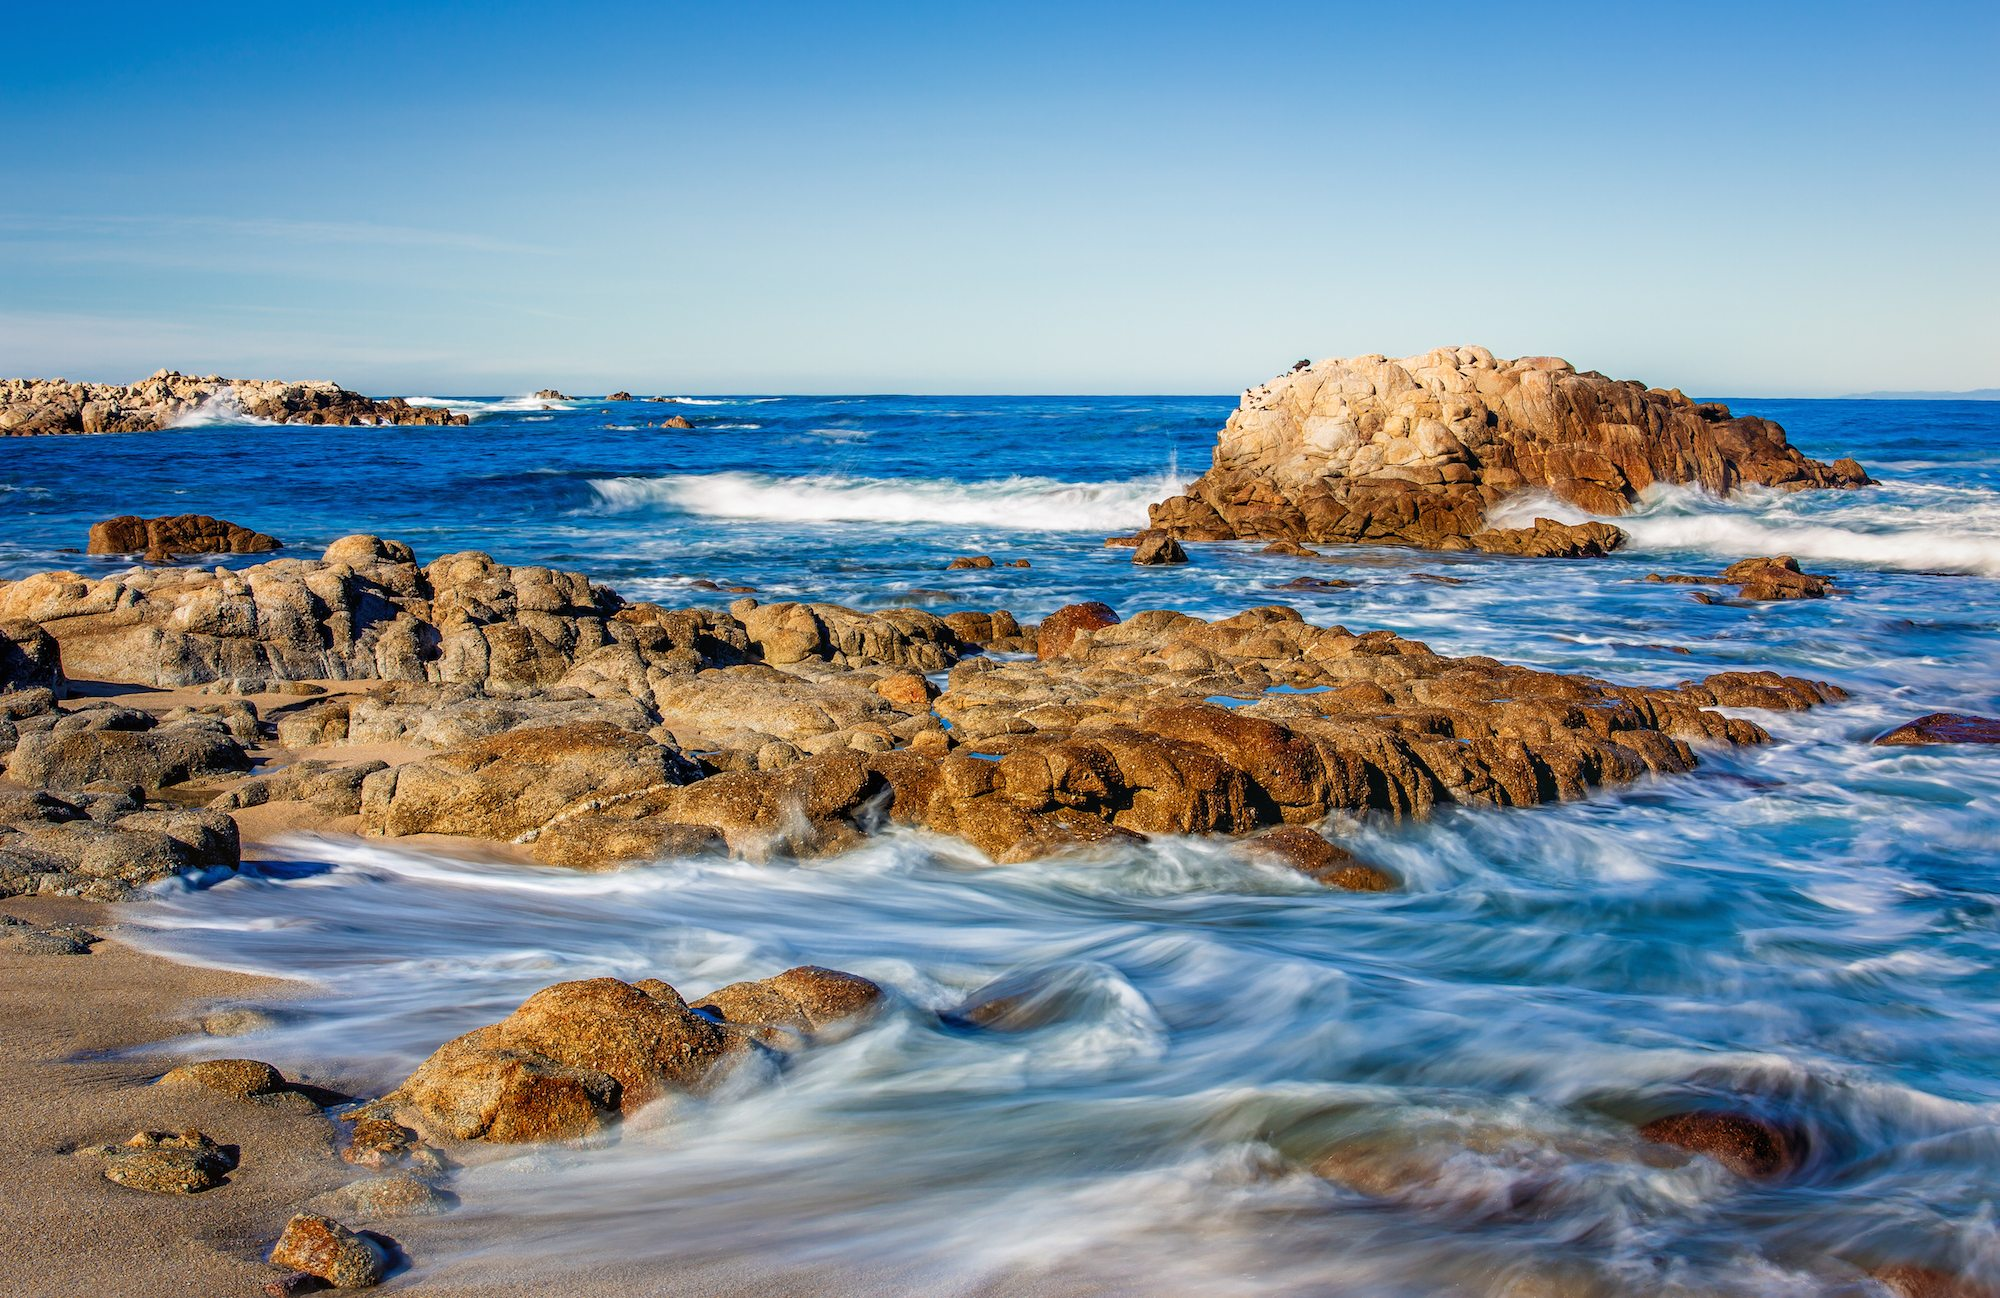 California 39 s 17 mile drive drive the nation for 17 mile drive celebrity homes